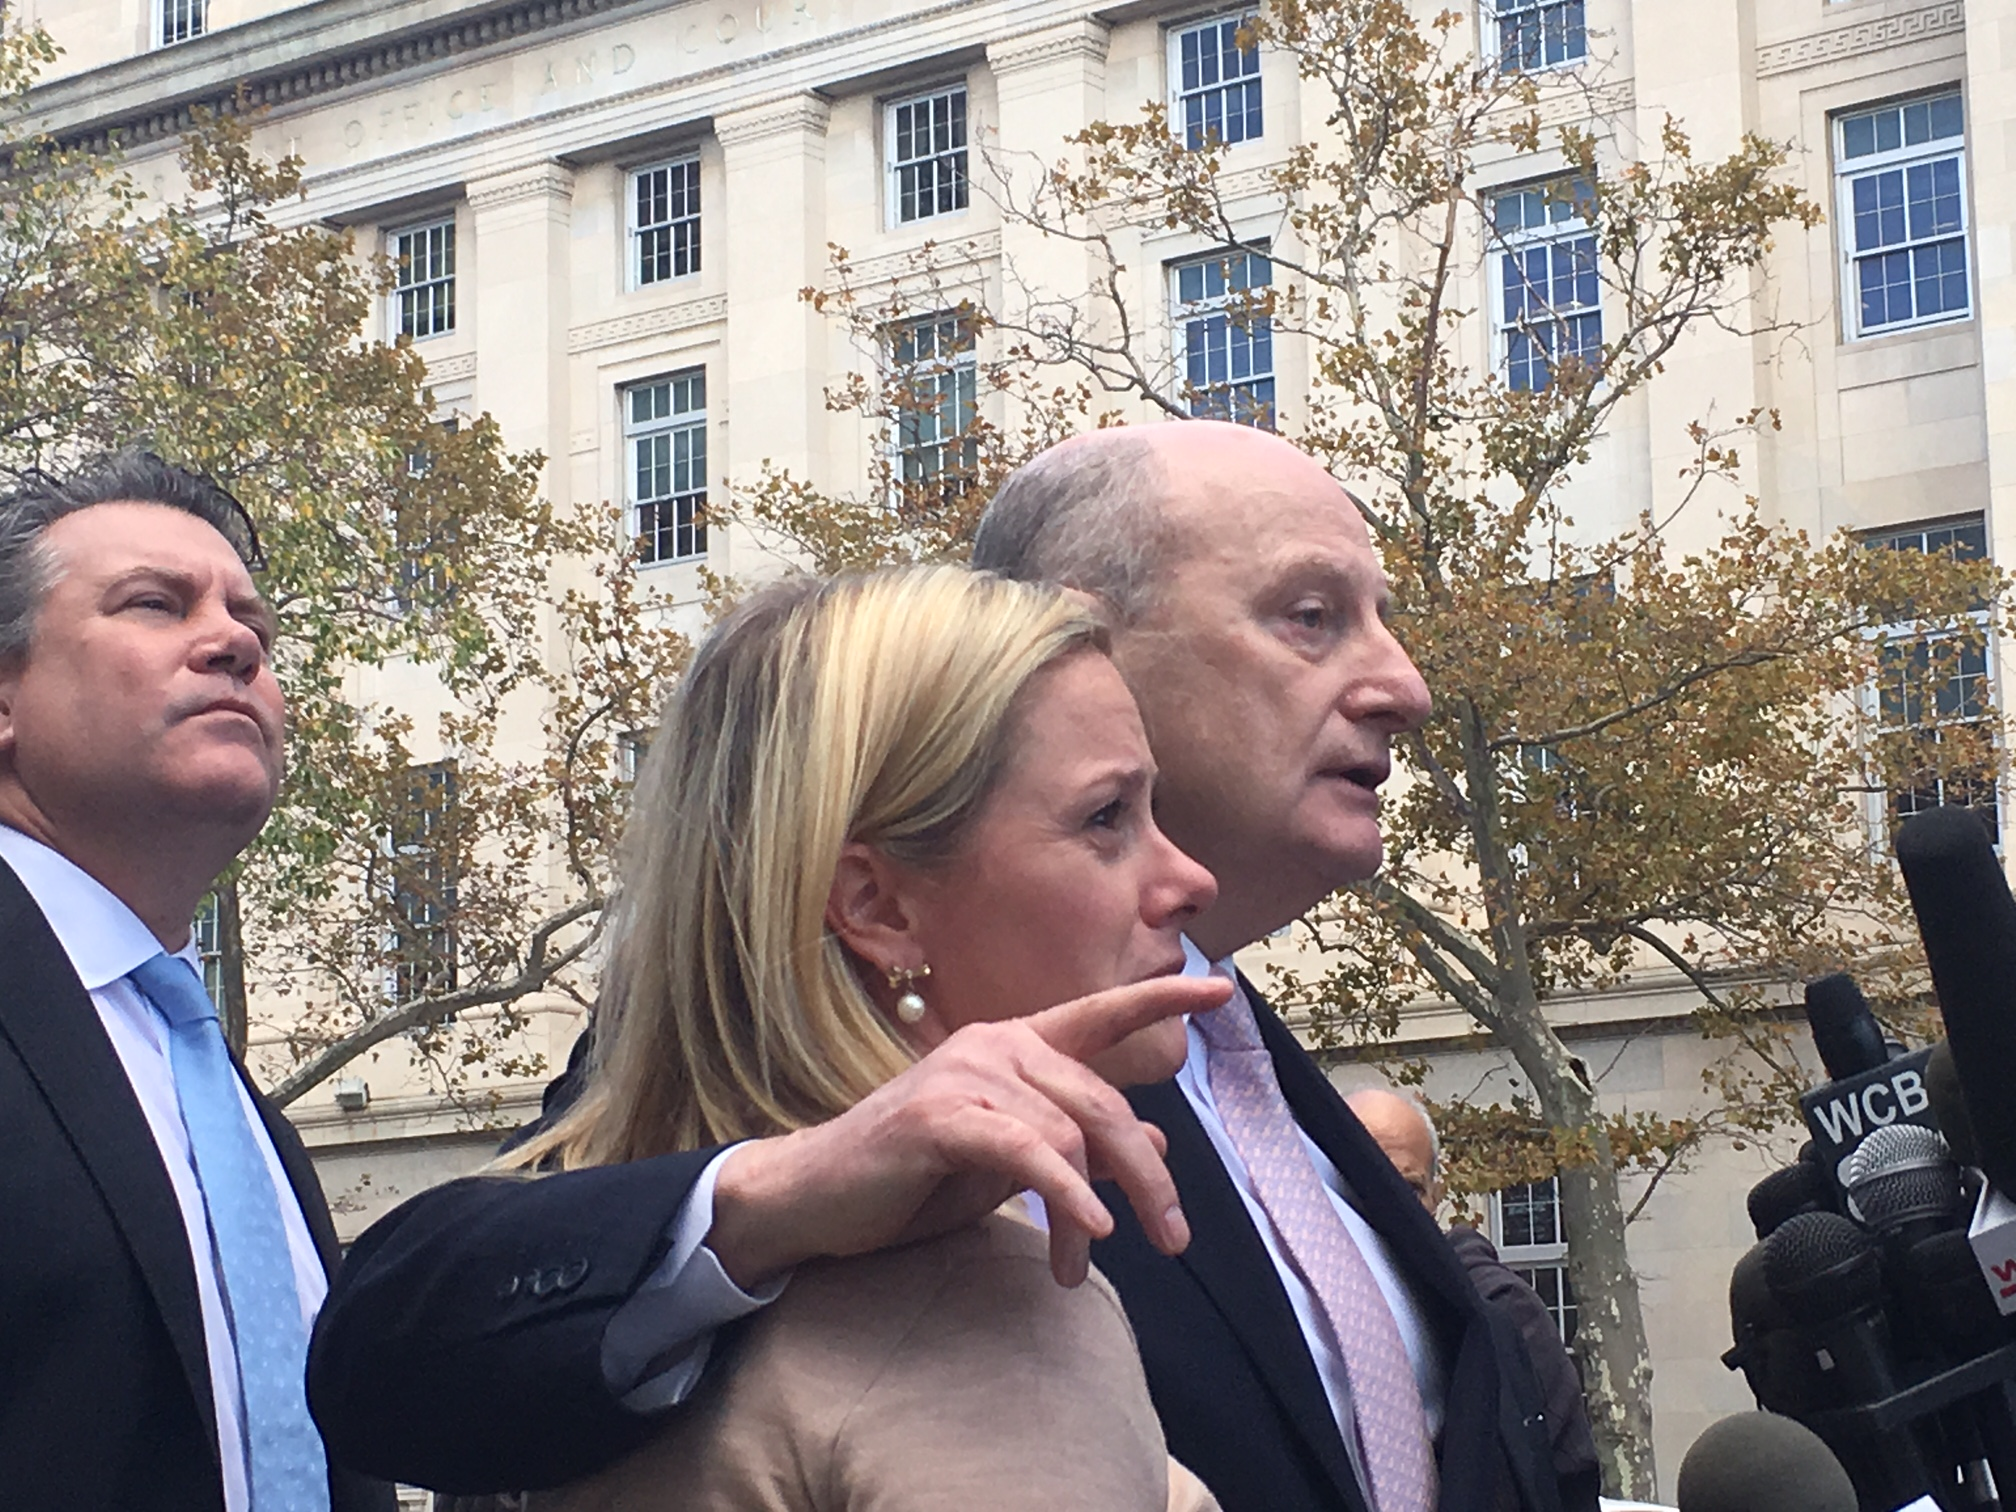 Kelly was visibly emotional following the guilty verdict in the Bridgegate case.